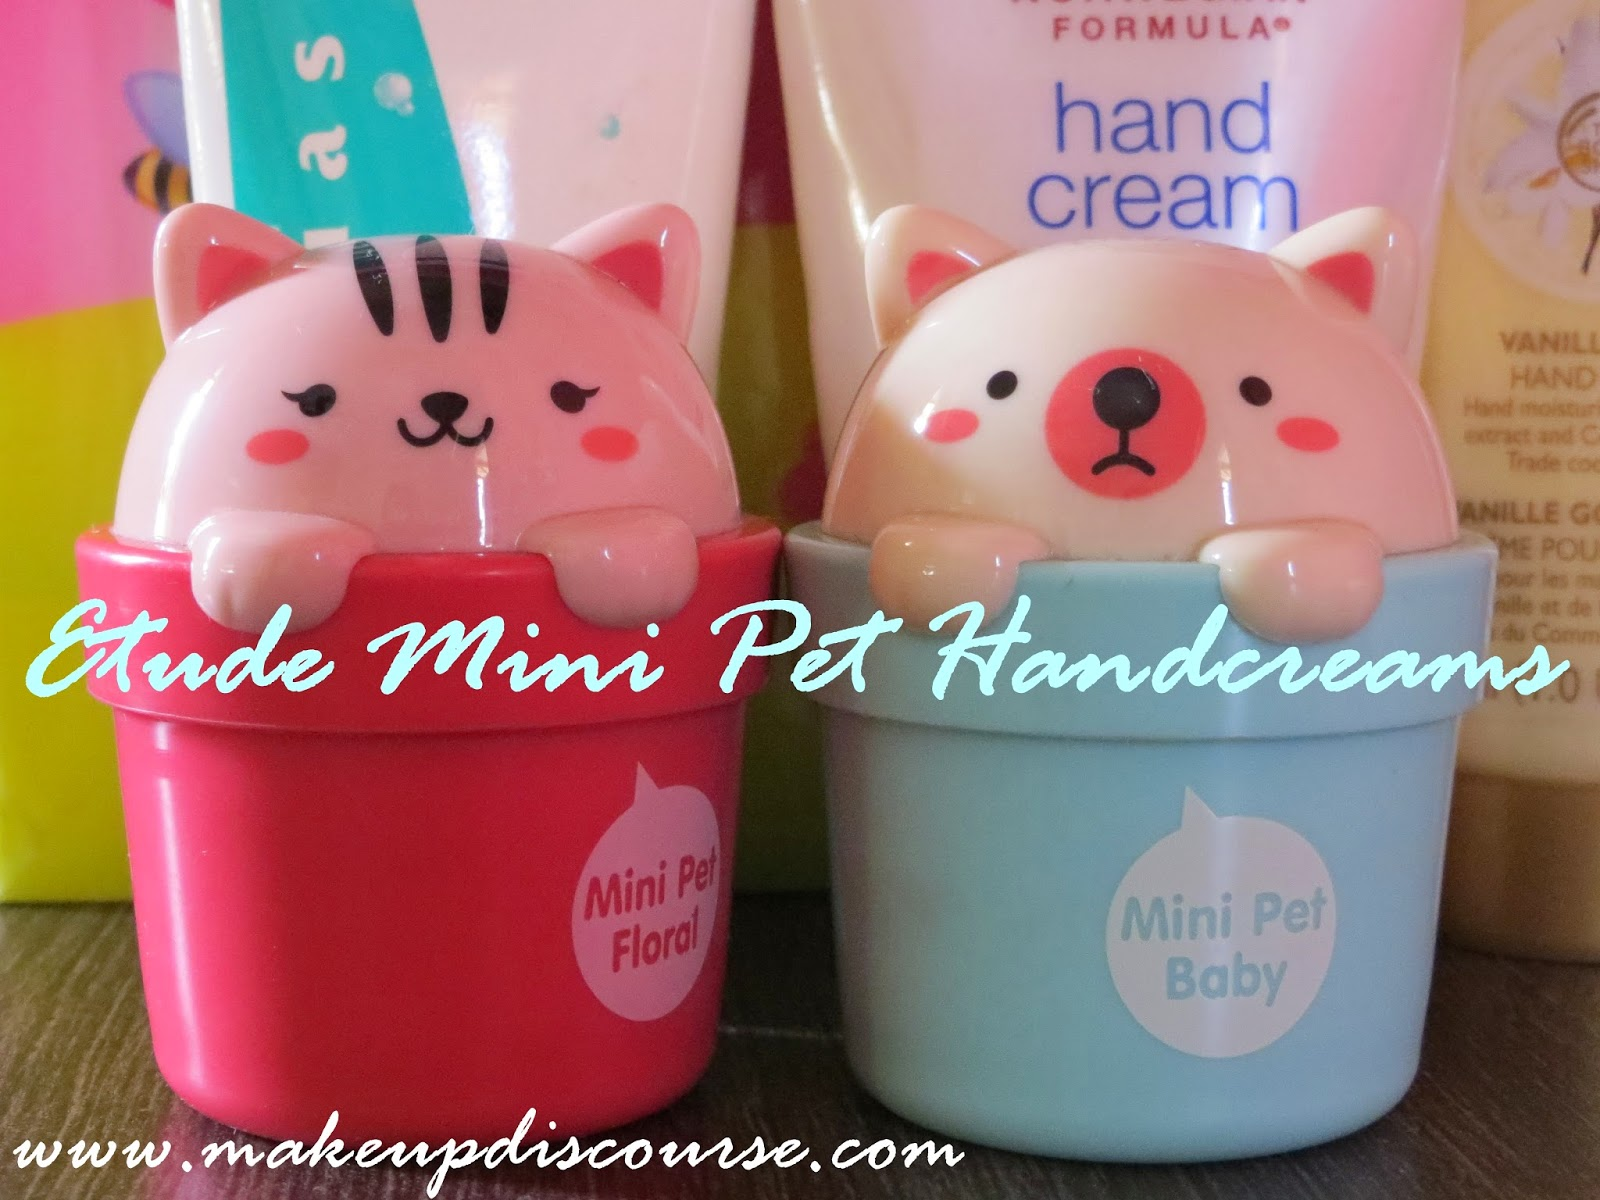 Etude House Mini Pet Handcreams in India